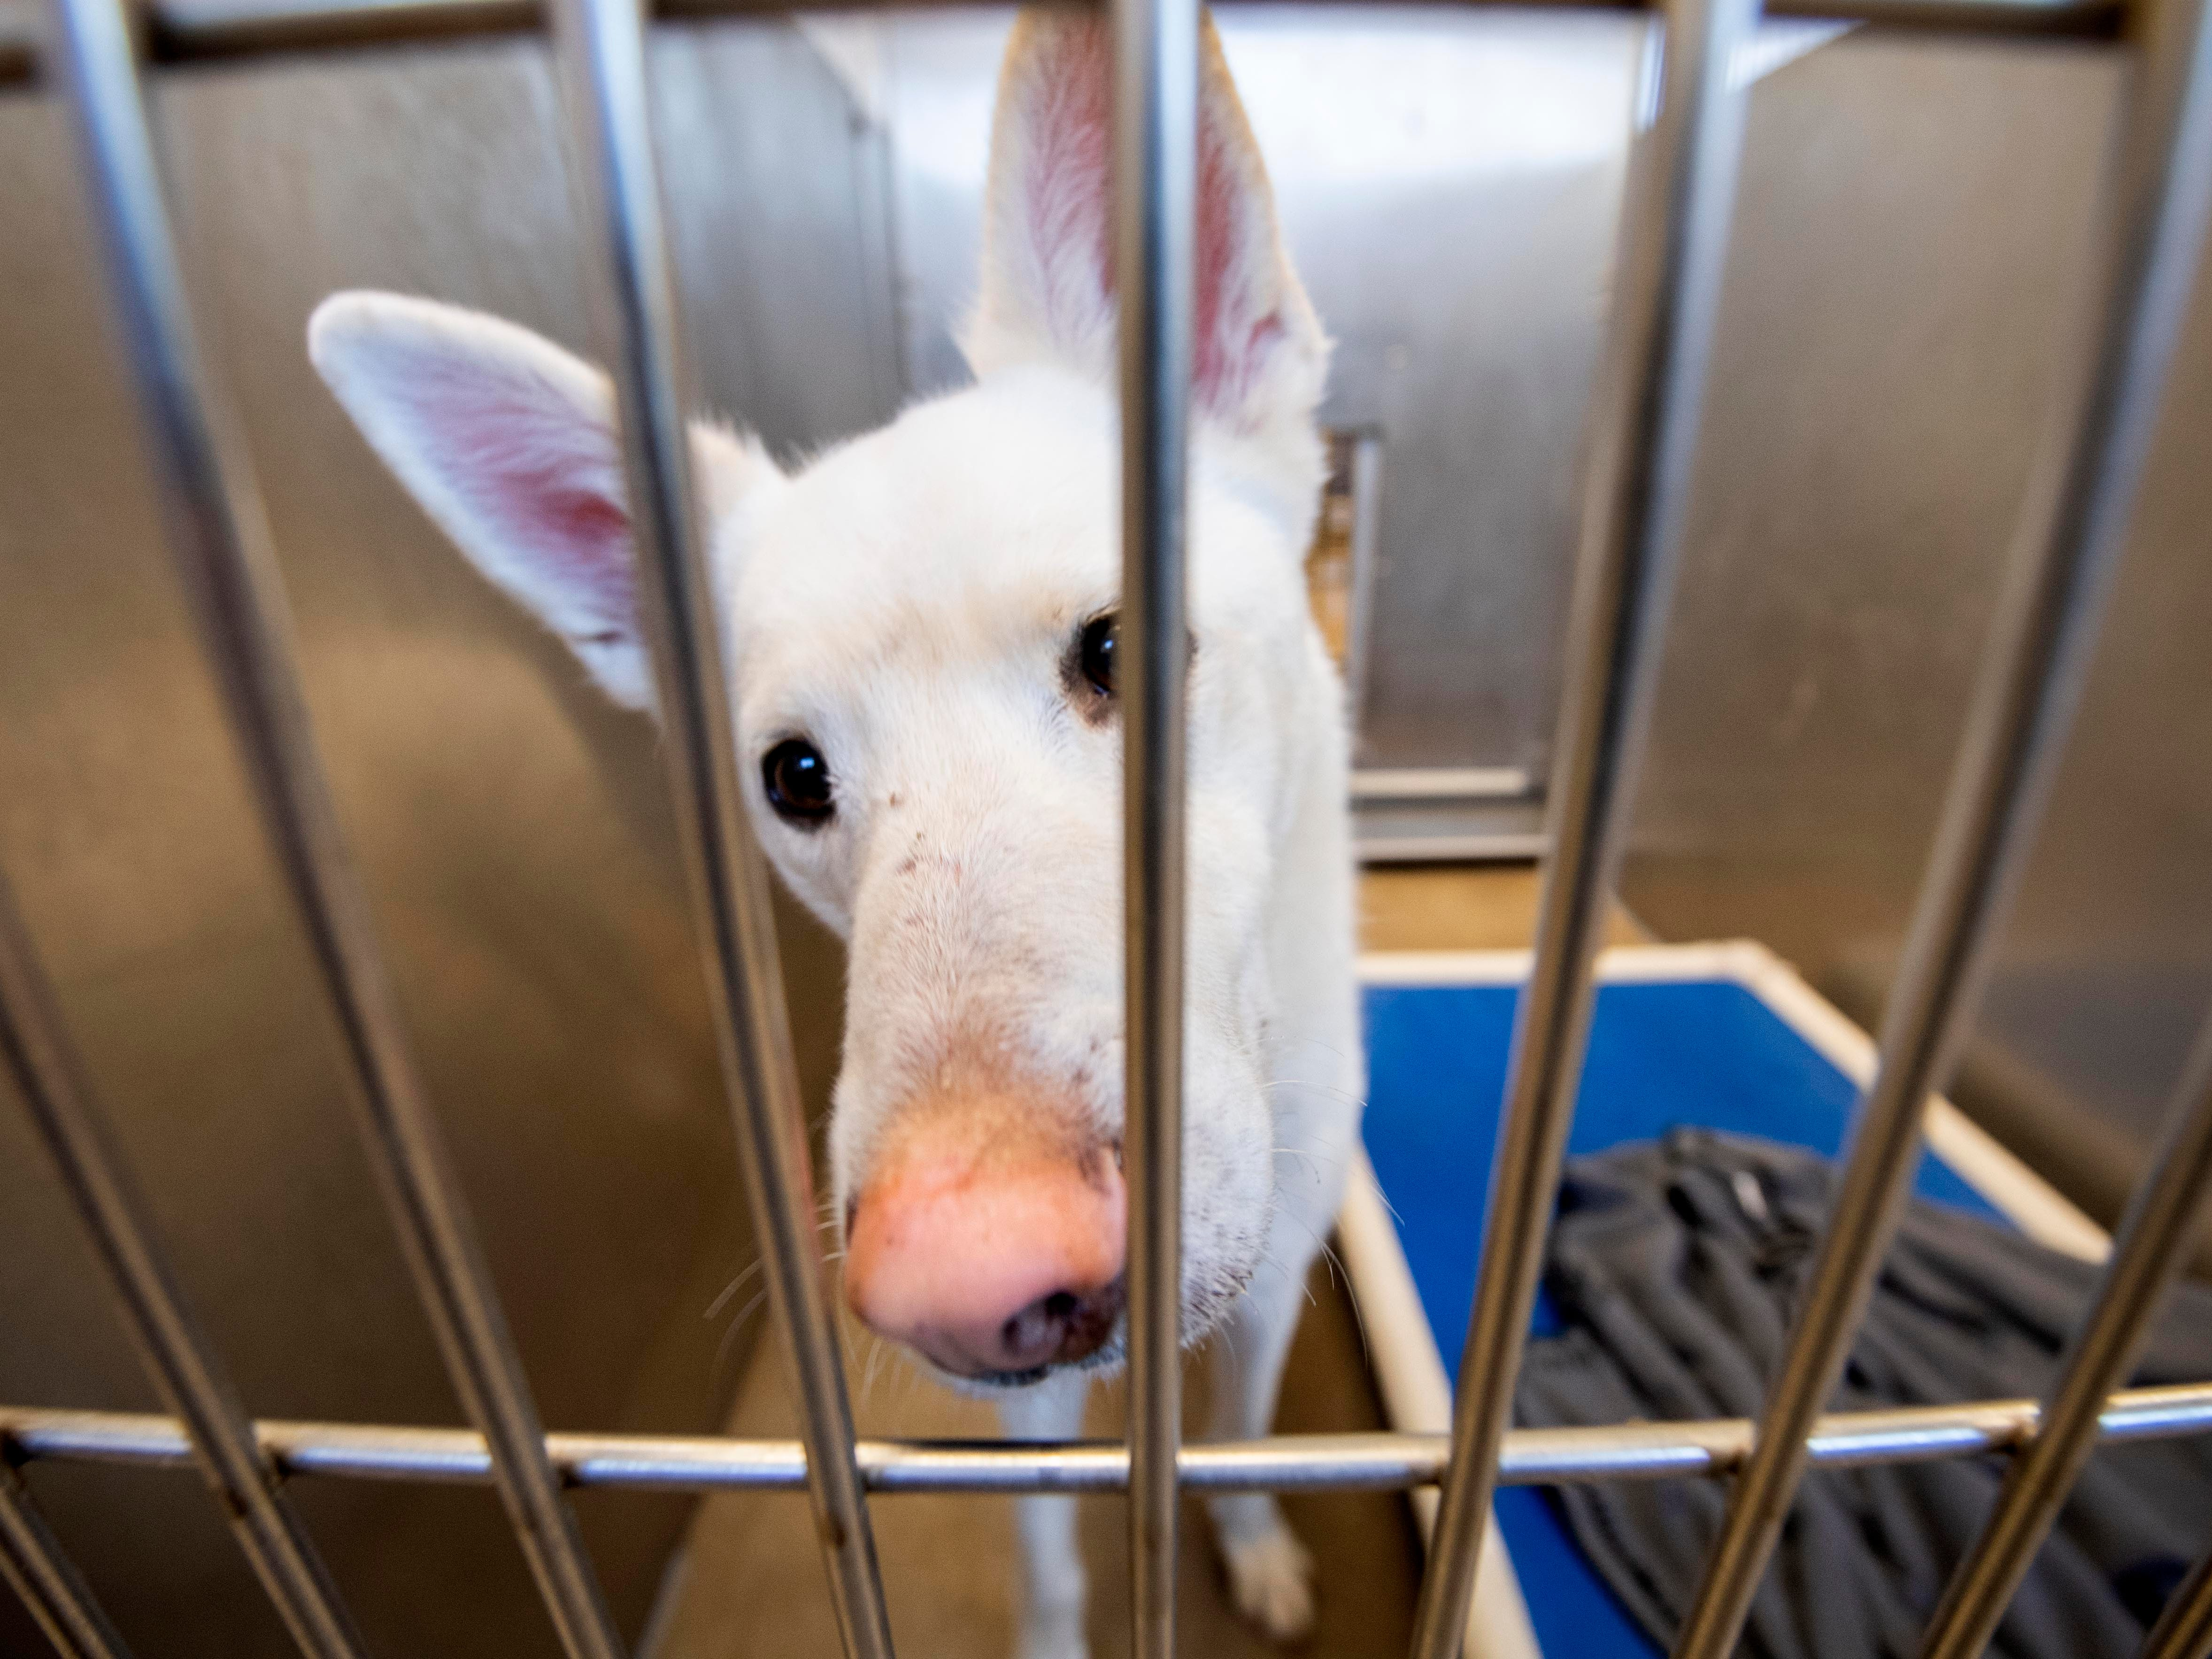 Fang, a 4-year old German Shepard mix, was brought into the SPCA after his owner could no longer take care of him.